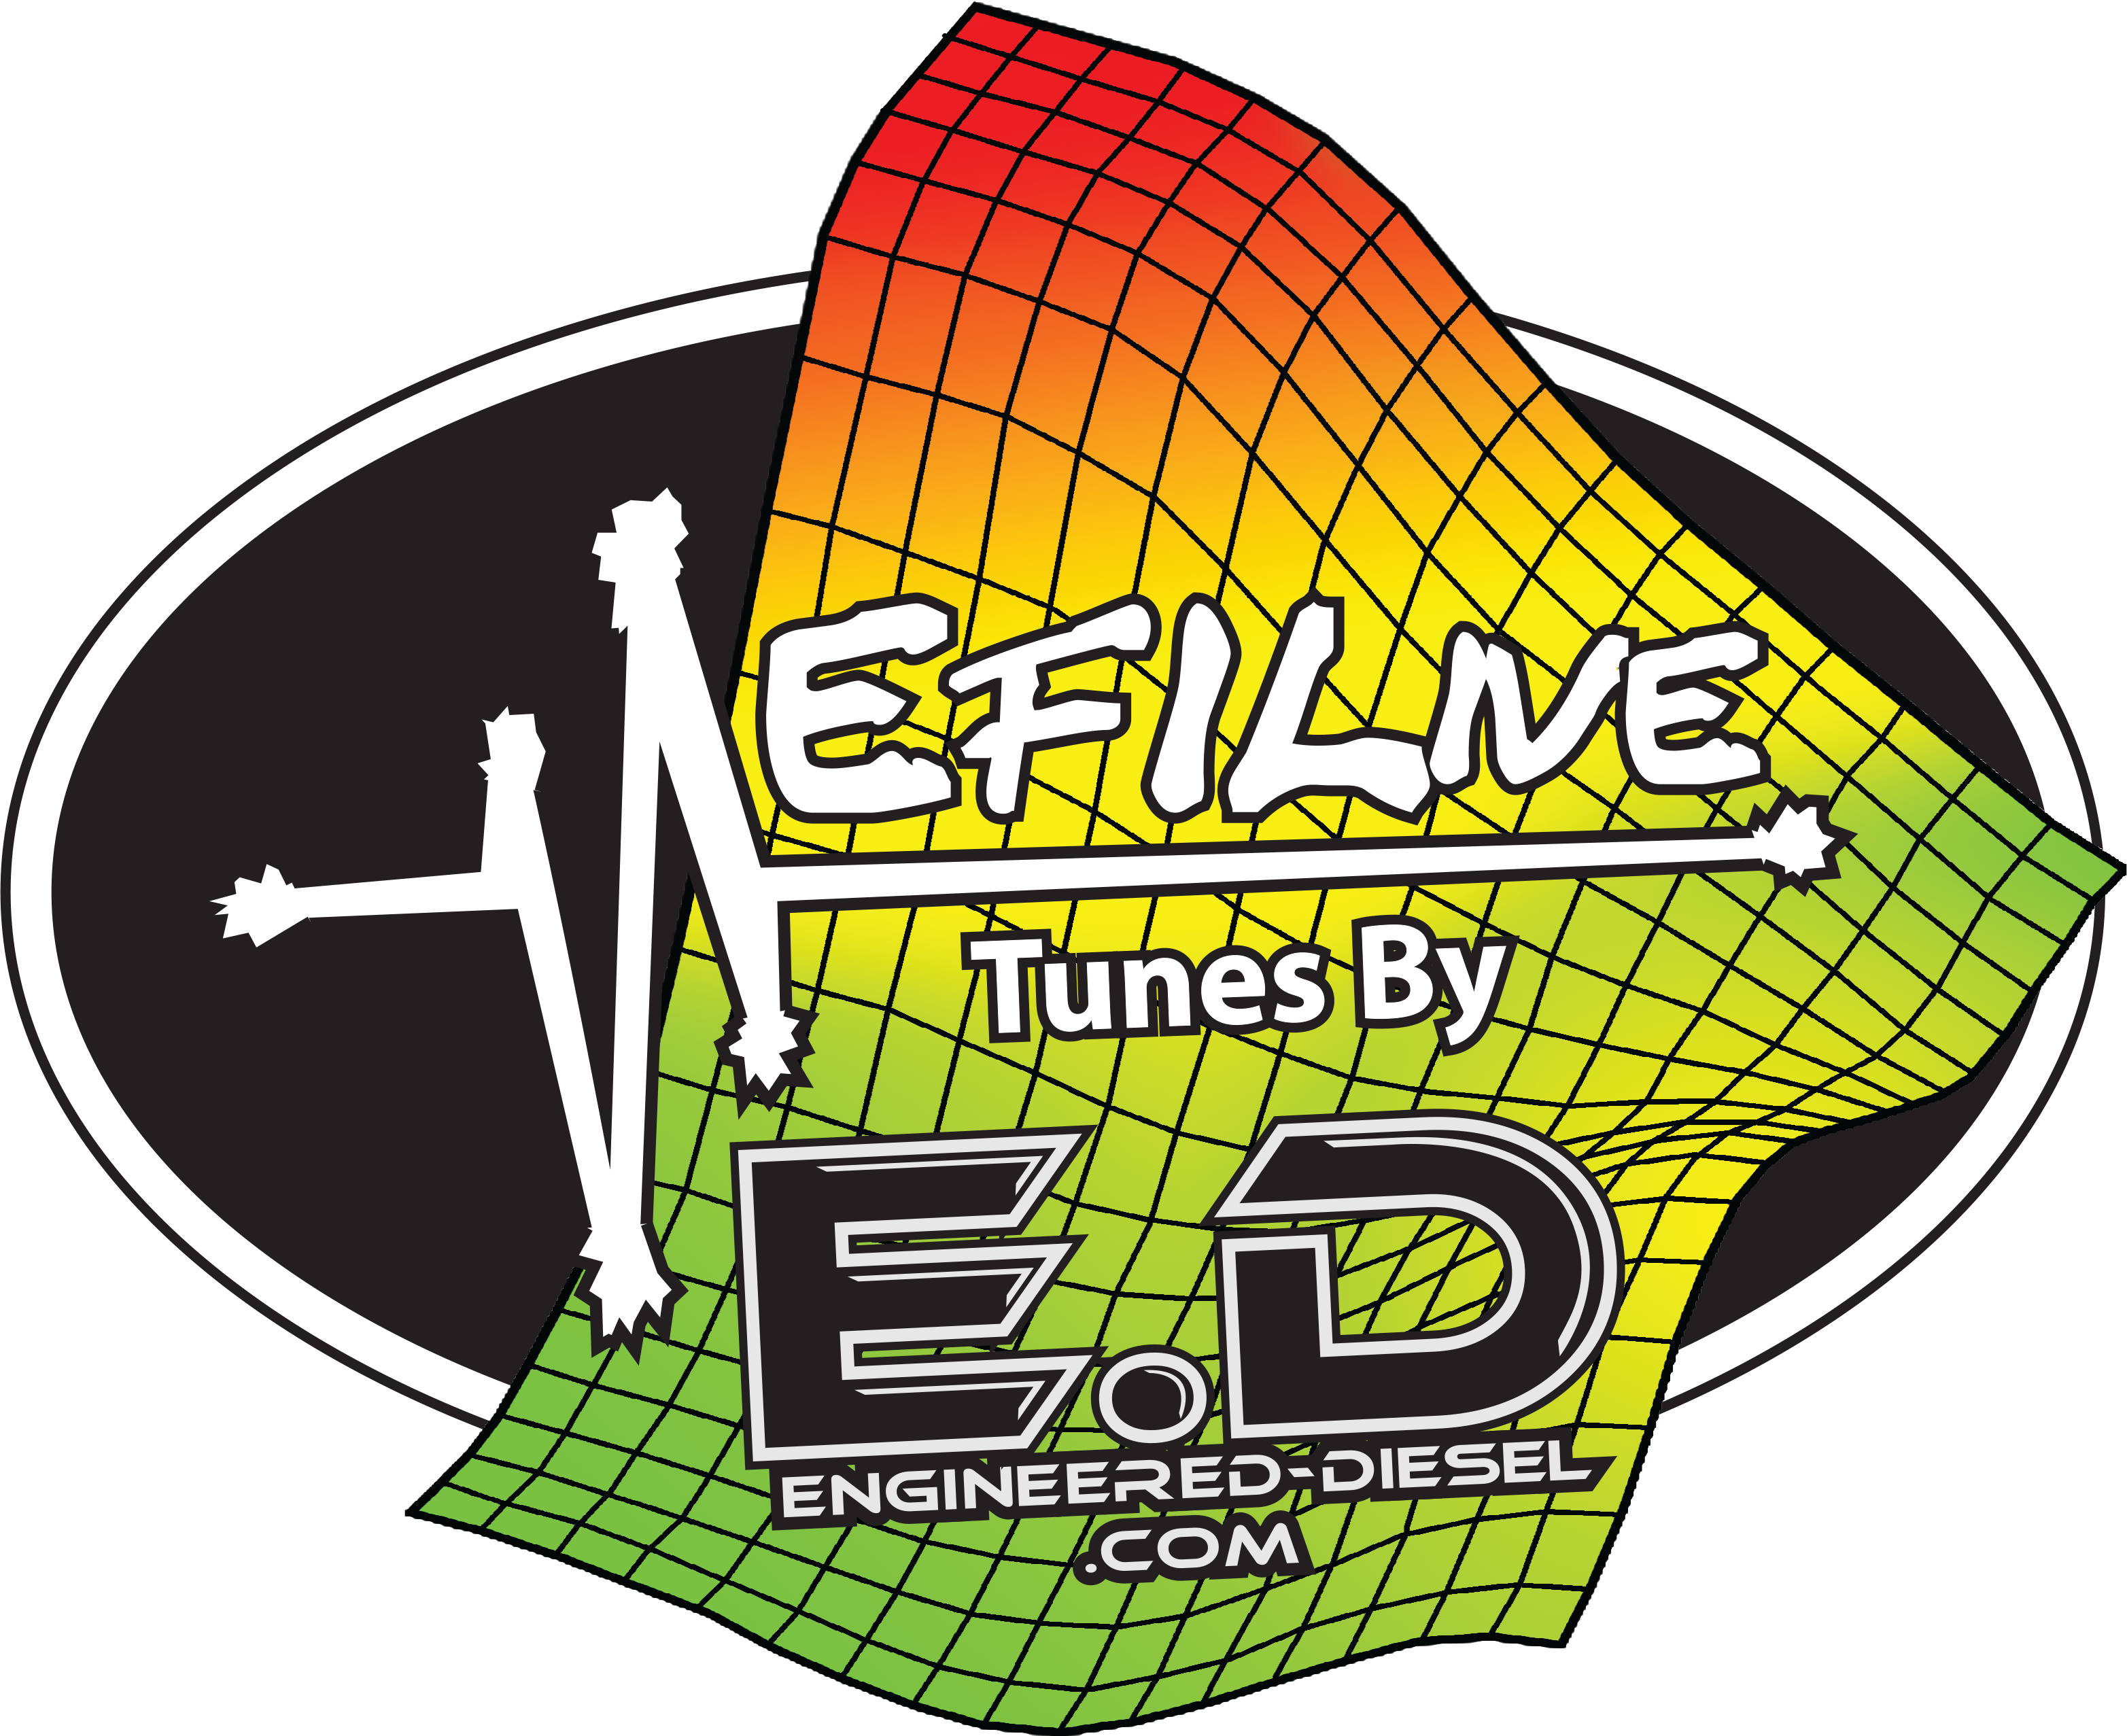 EFI Live Tunes by Engineered Diesel!